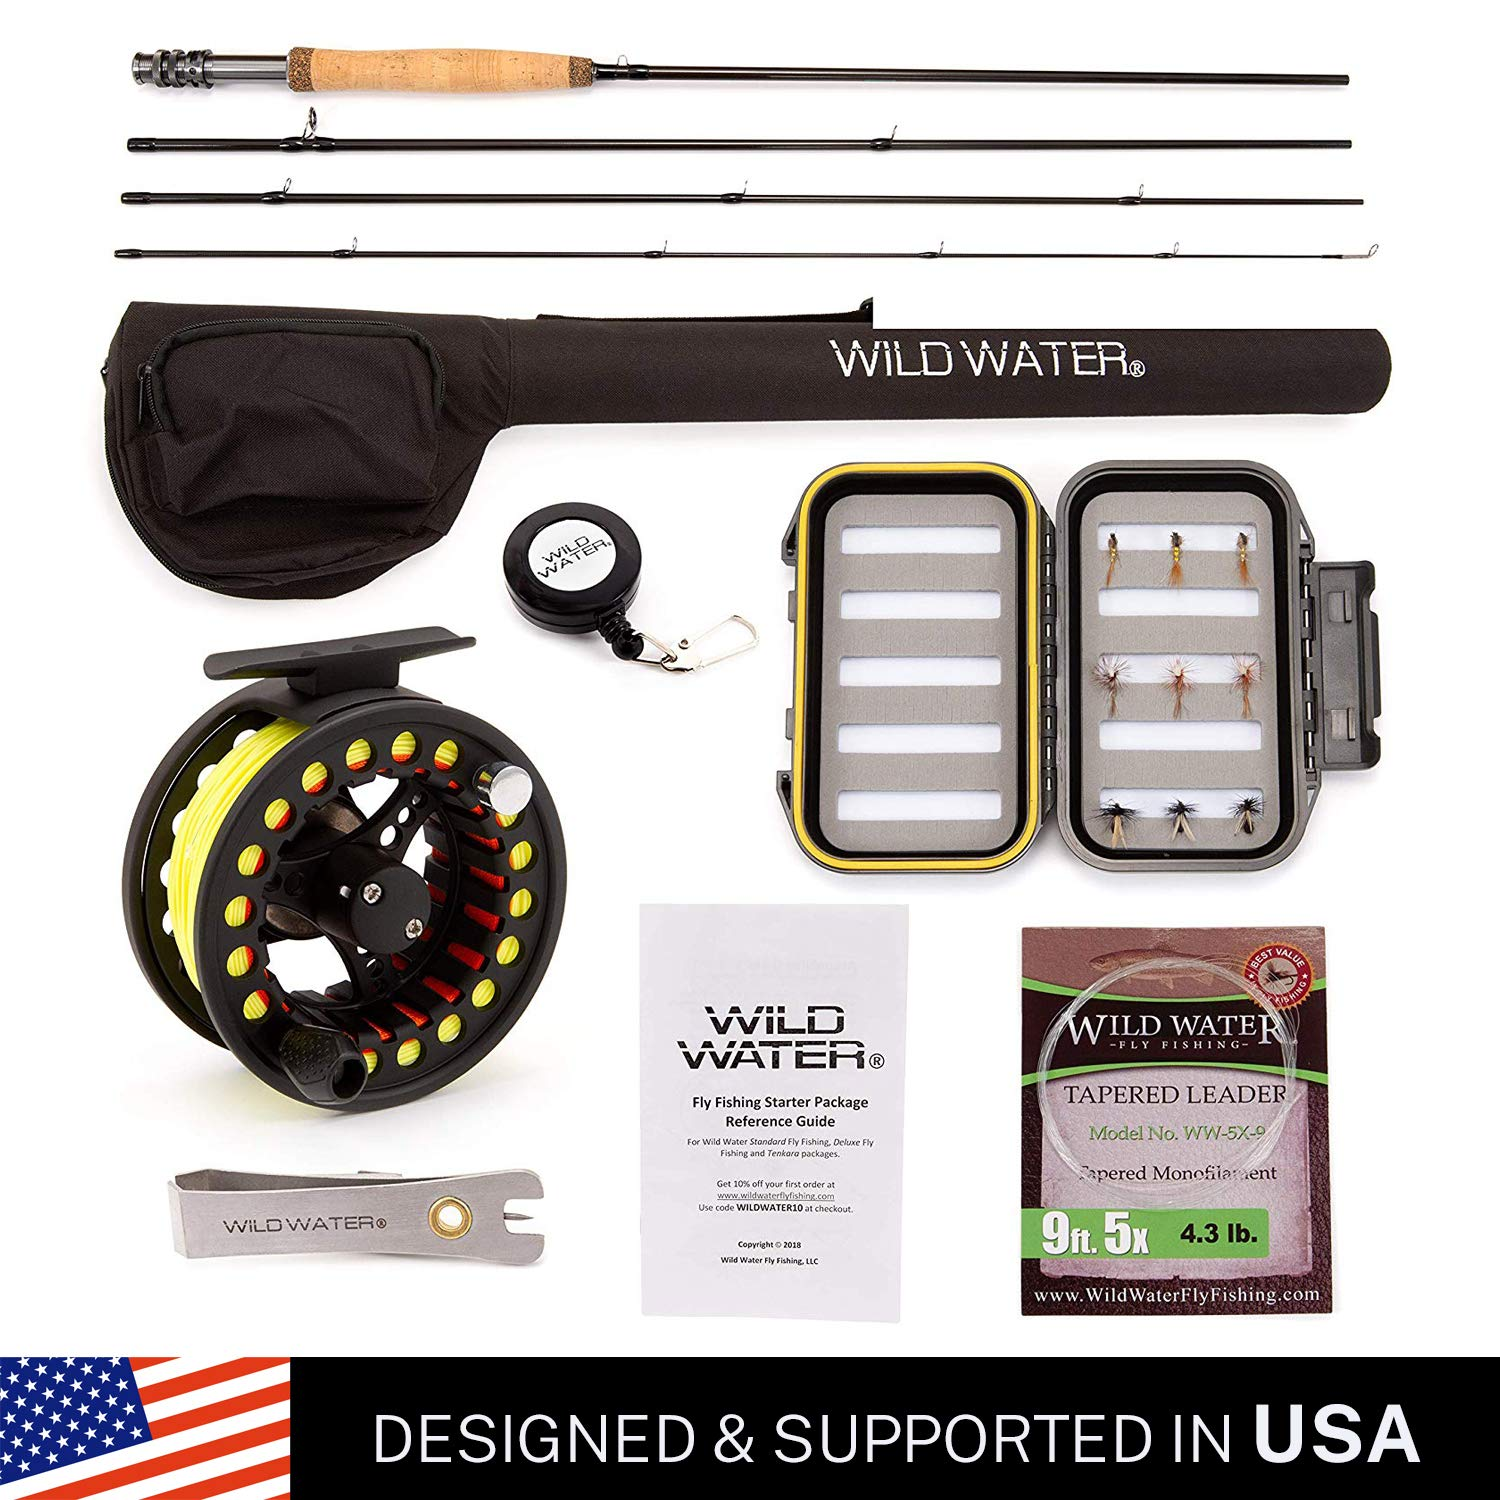 Wild Water Fly Fishing Complete 5/6 Starter Package by Wild Water